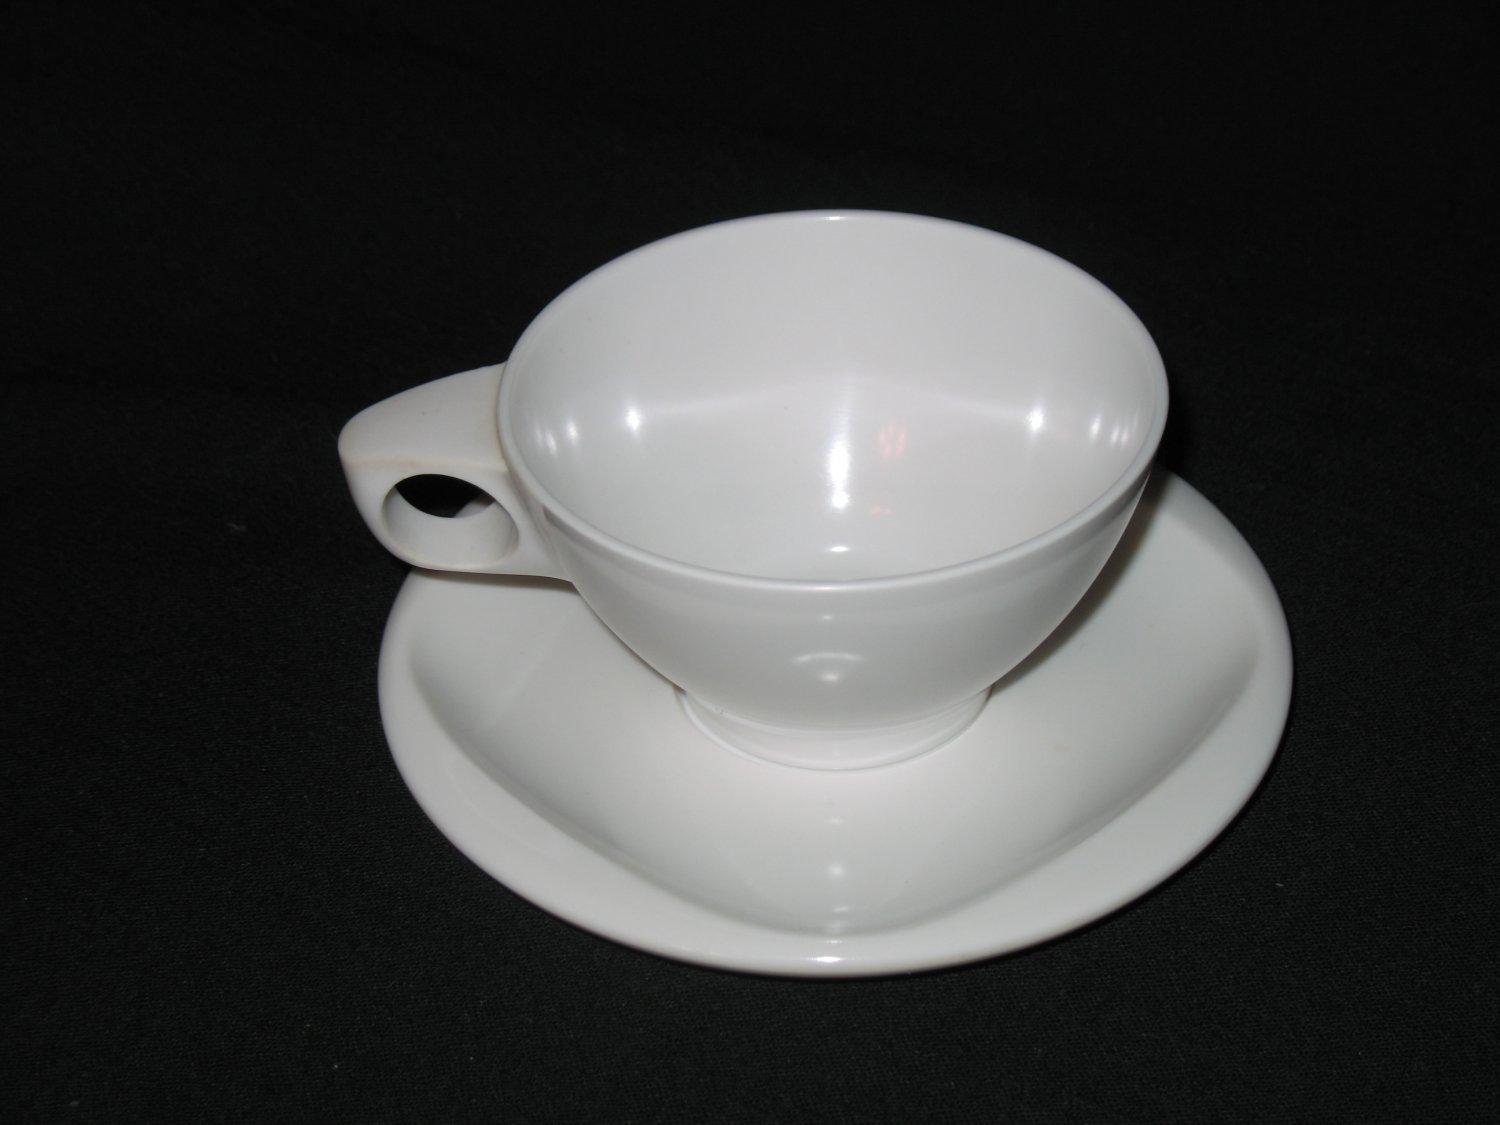 Boonton Ware  Cup and Saucer  Set  White